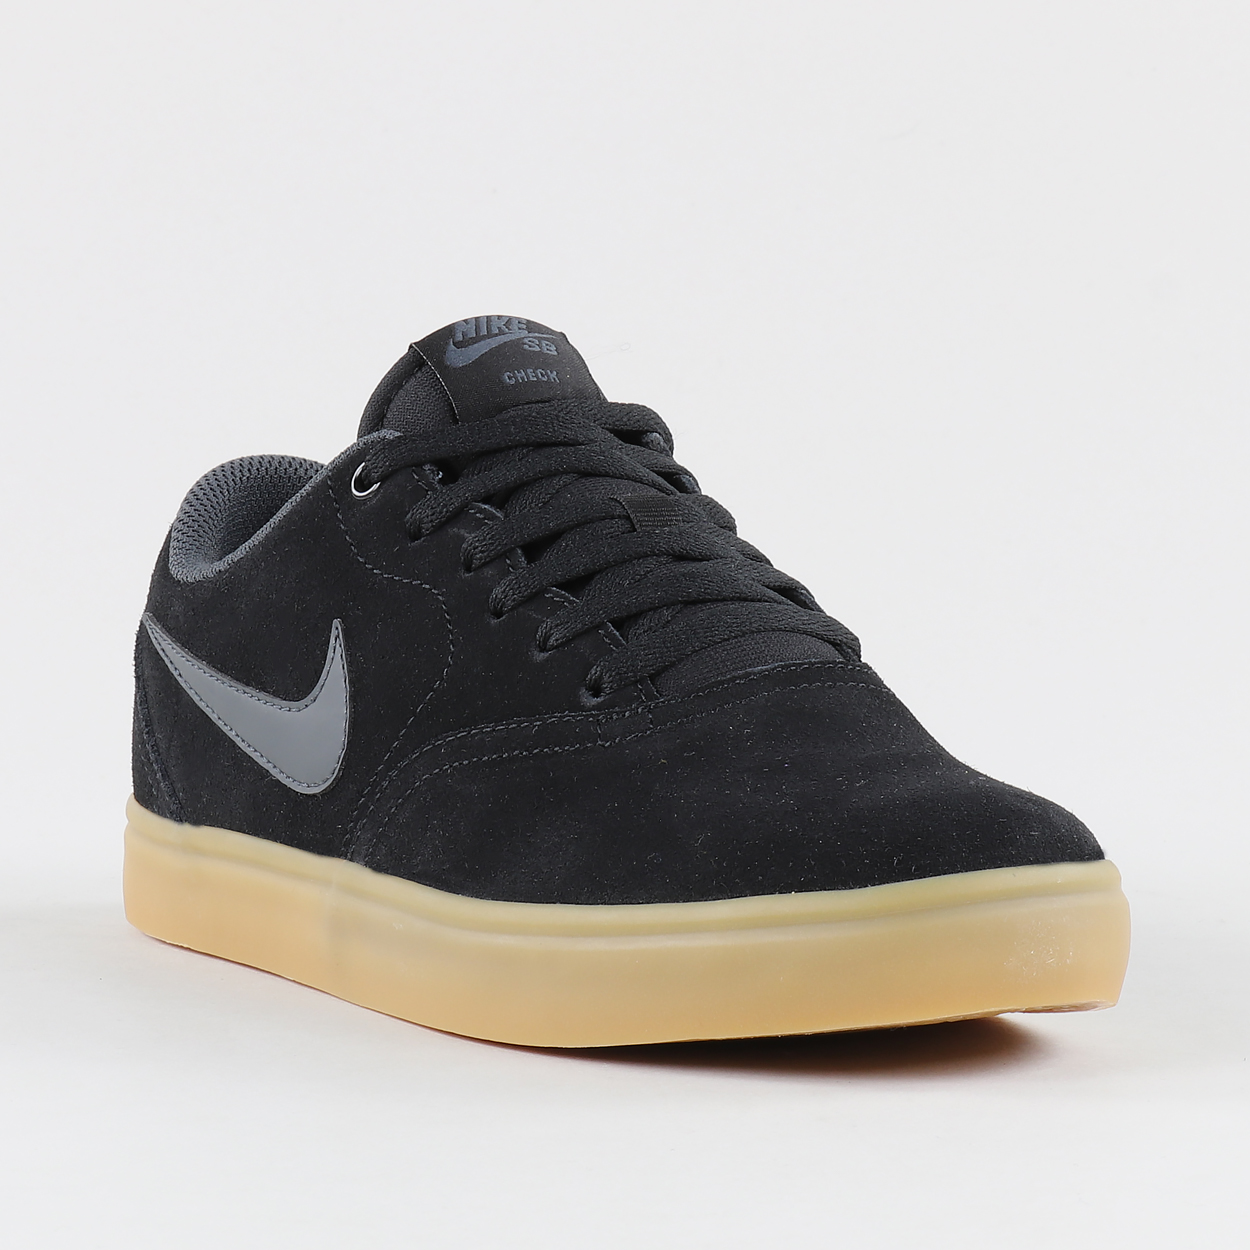 ba7ca165a261 A pair of skate-ready kicks from Nike SB which feature Swoosh detailing and  a Solarsoft insole. The Check Solar shoes are made from suede uppers which  sit ...